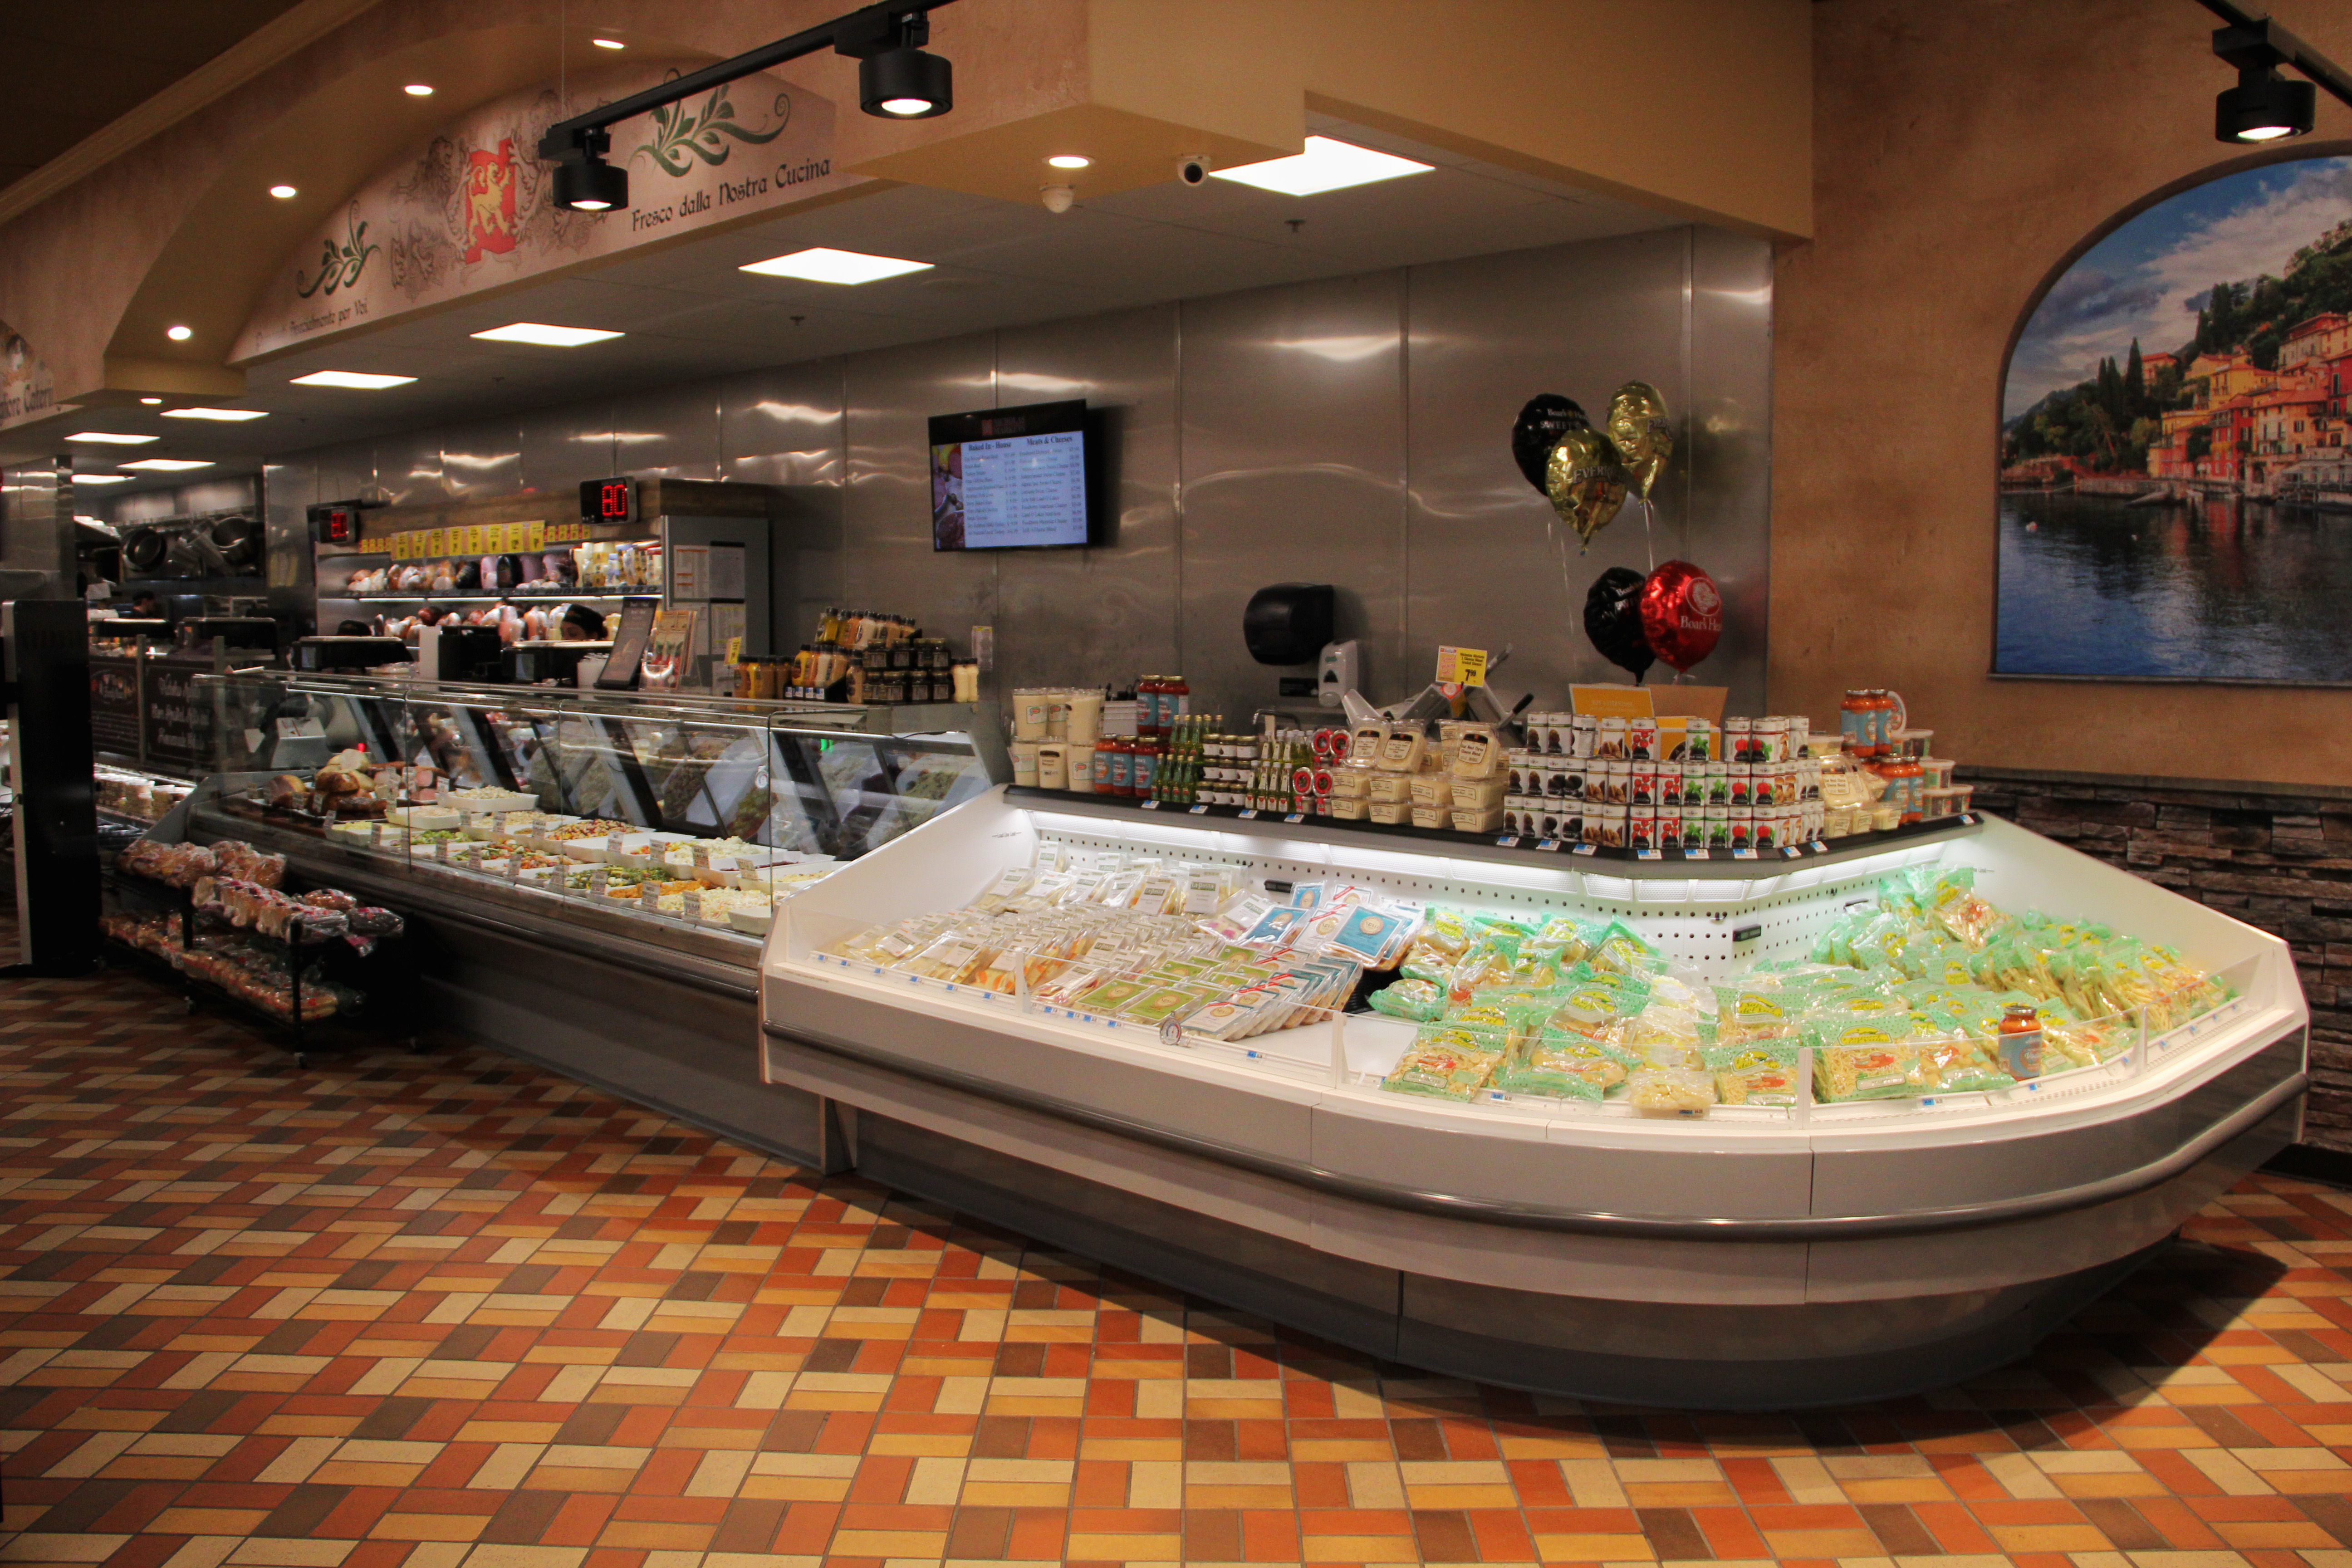 Refrigerated Displays for Service & Self-Service